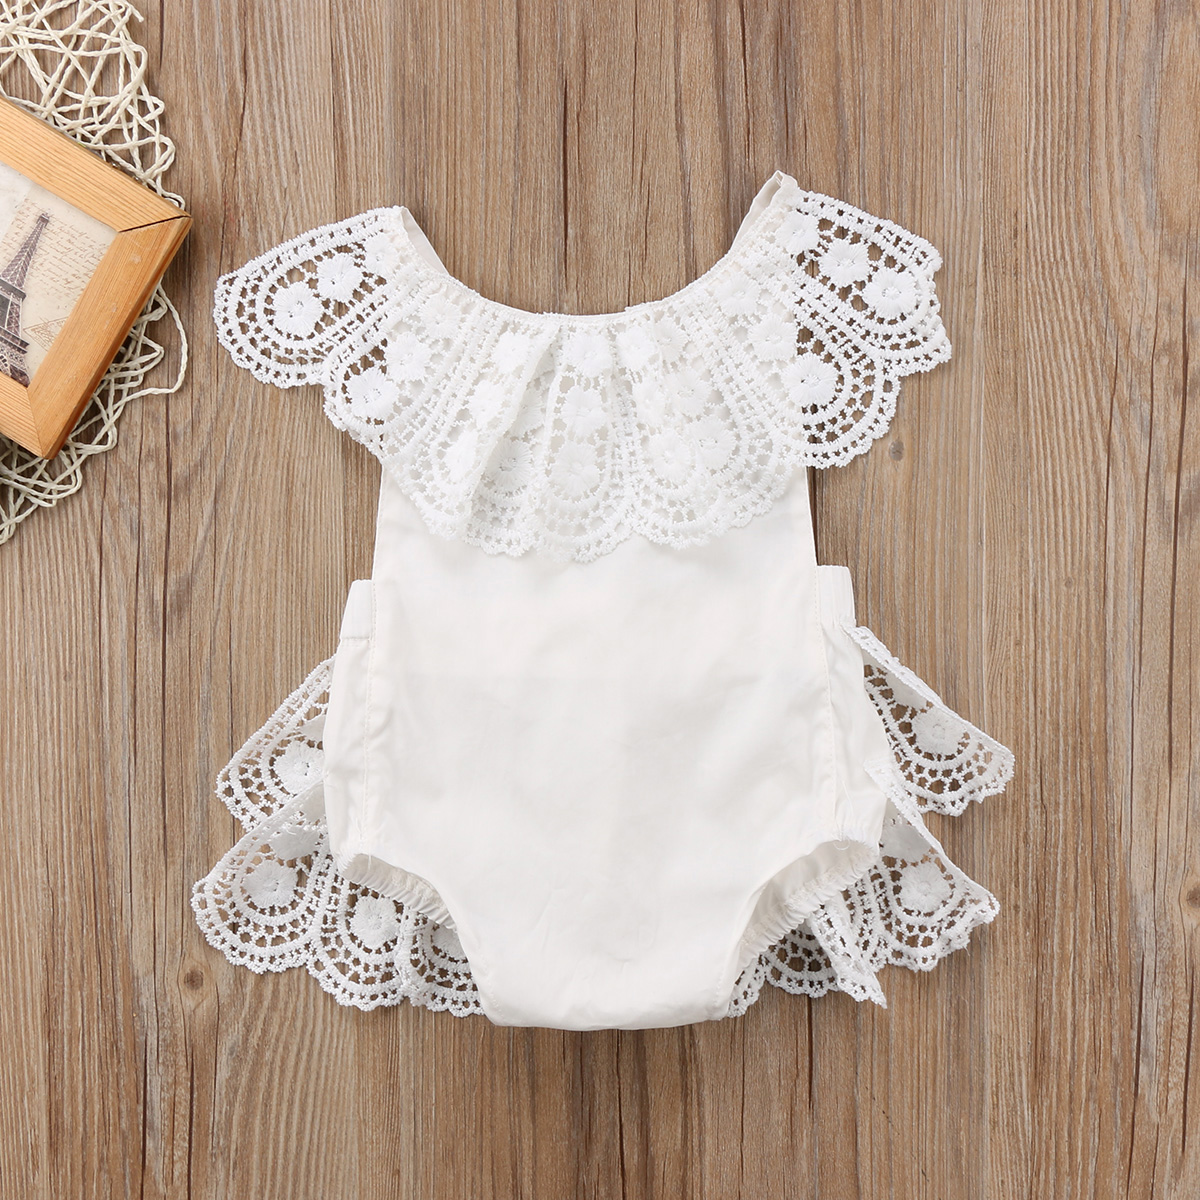 Cute Easter Rompers Online Sale, UP TO 20 OFF